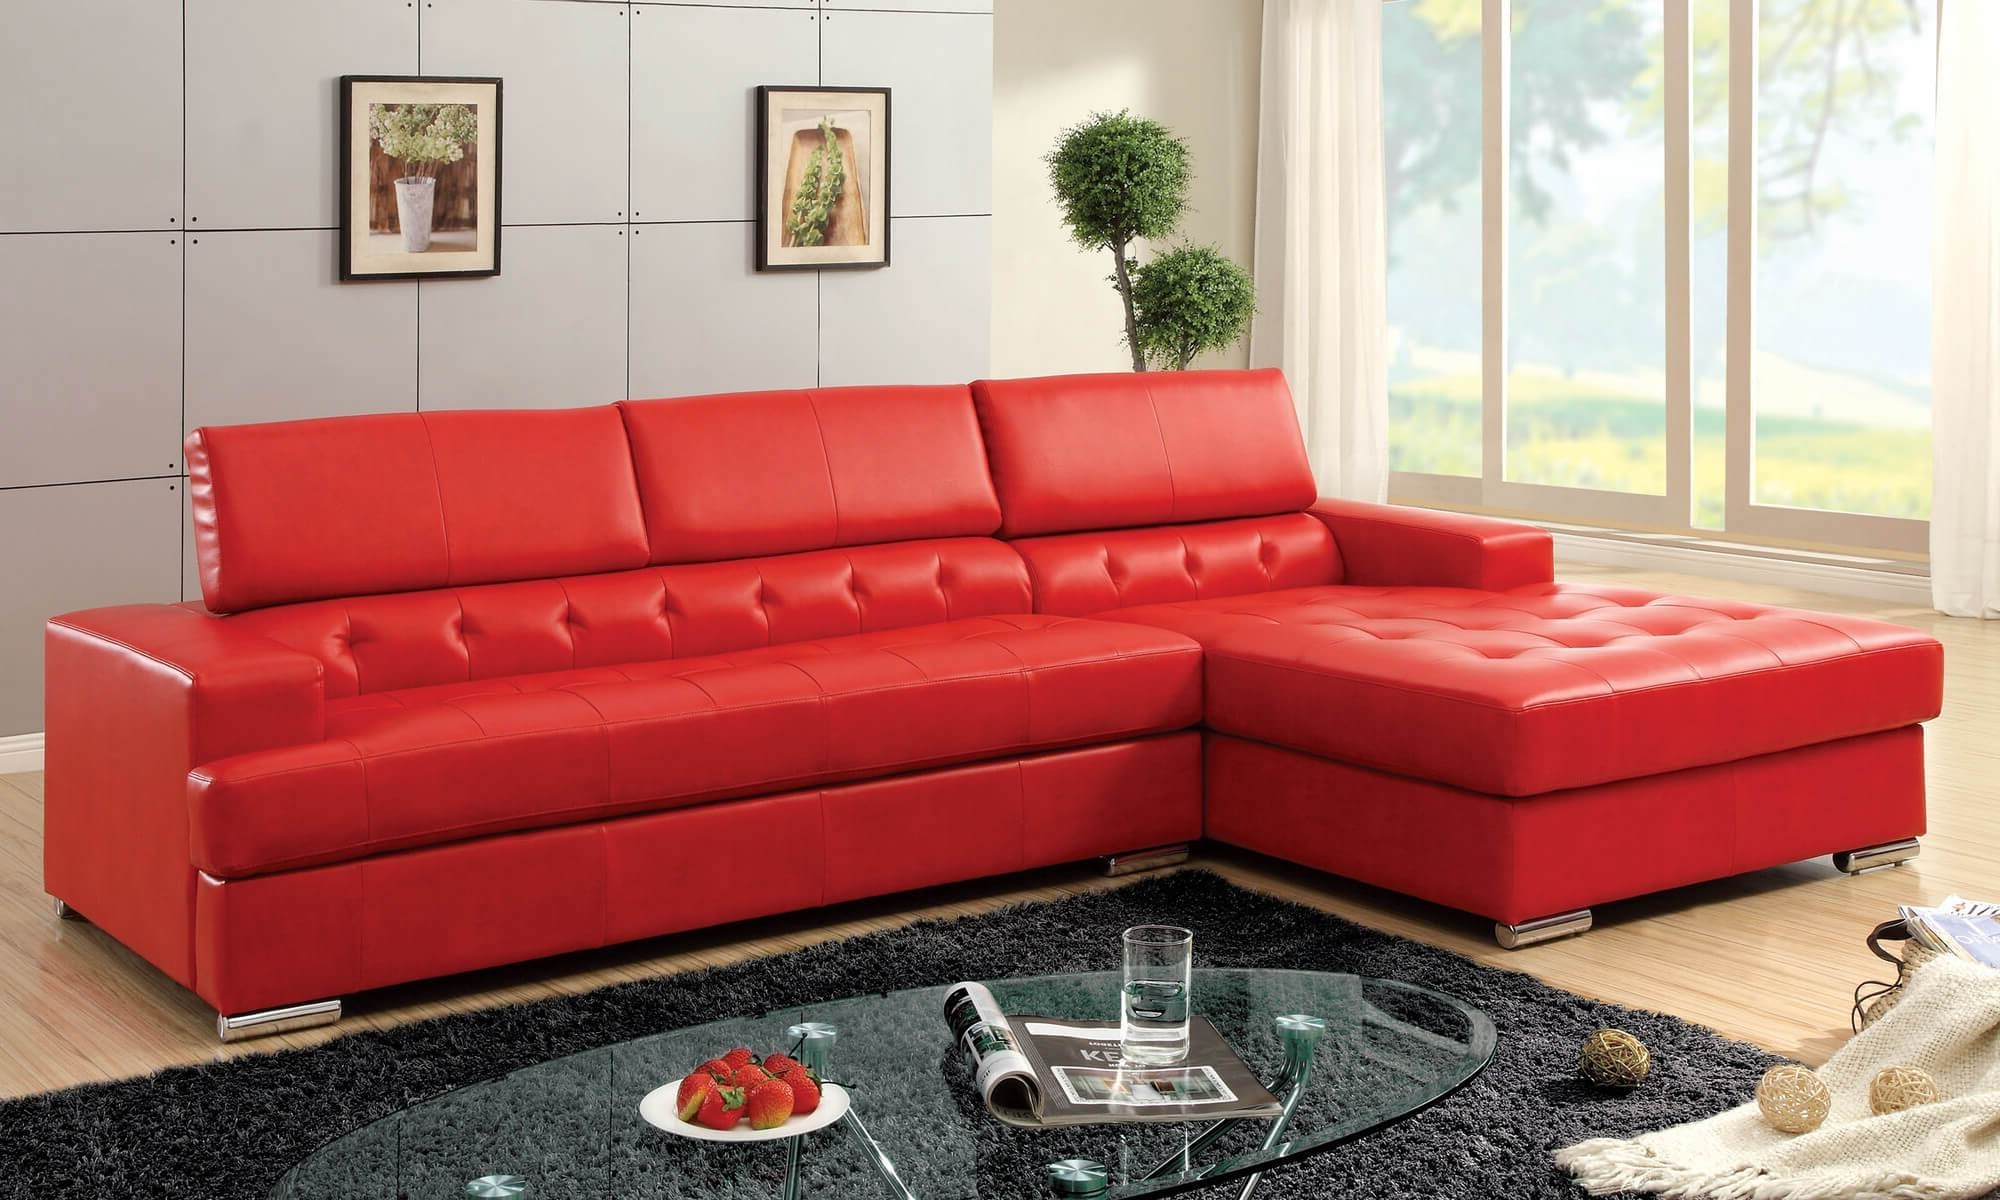 Current Awesome Cheap Red Leather Sofa Plan All About Home Design With Red Leather Couches (View 1 of 20)